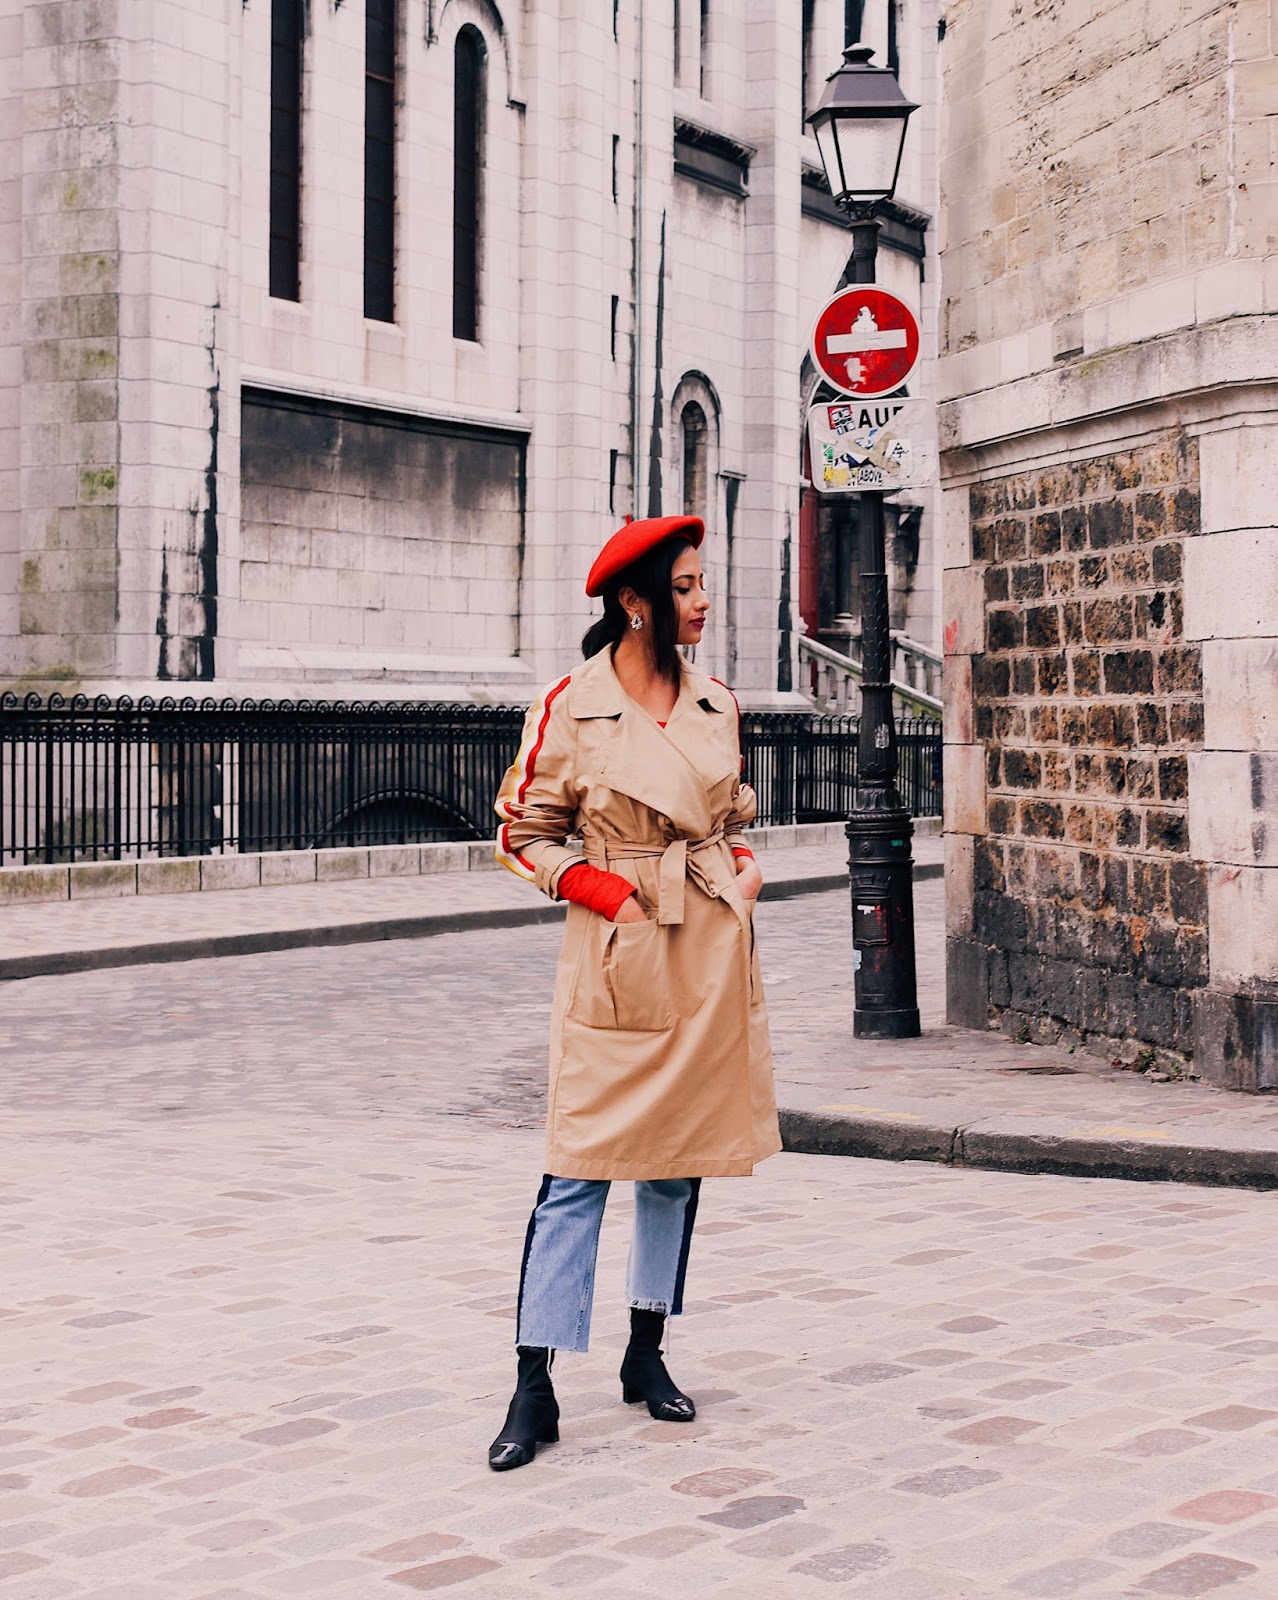 paris outfit, paris street style, paris spring summer fashion, beret, red beret, trench coat, what to wear in paris, indian blogger, uk blog, effortless chic, parisian chic, french style